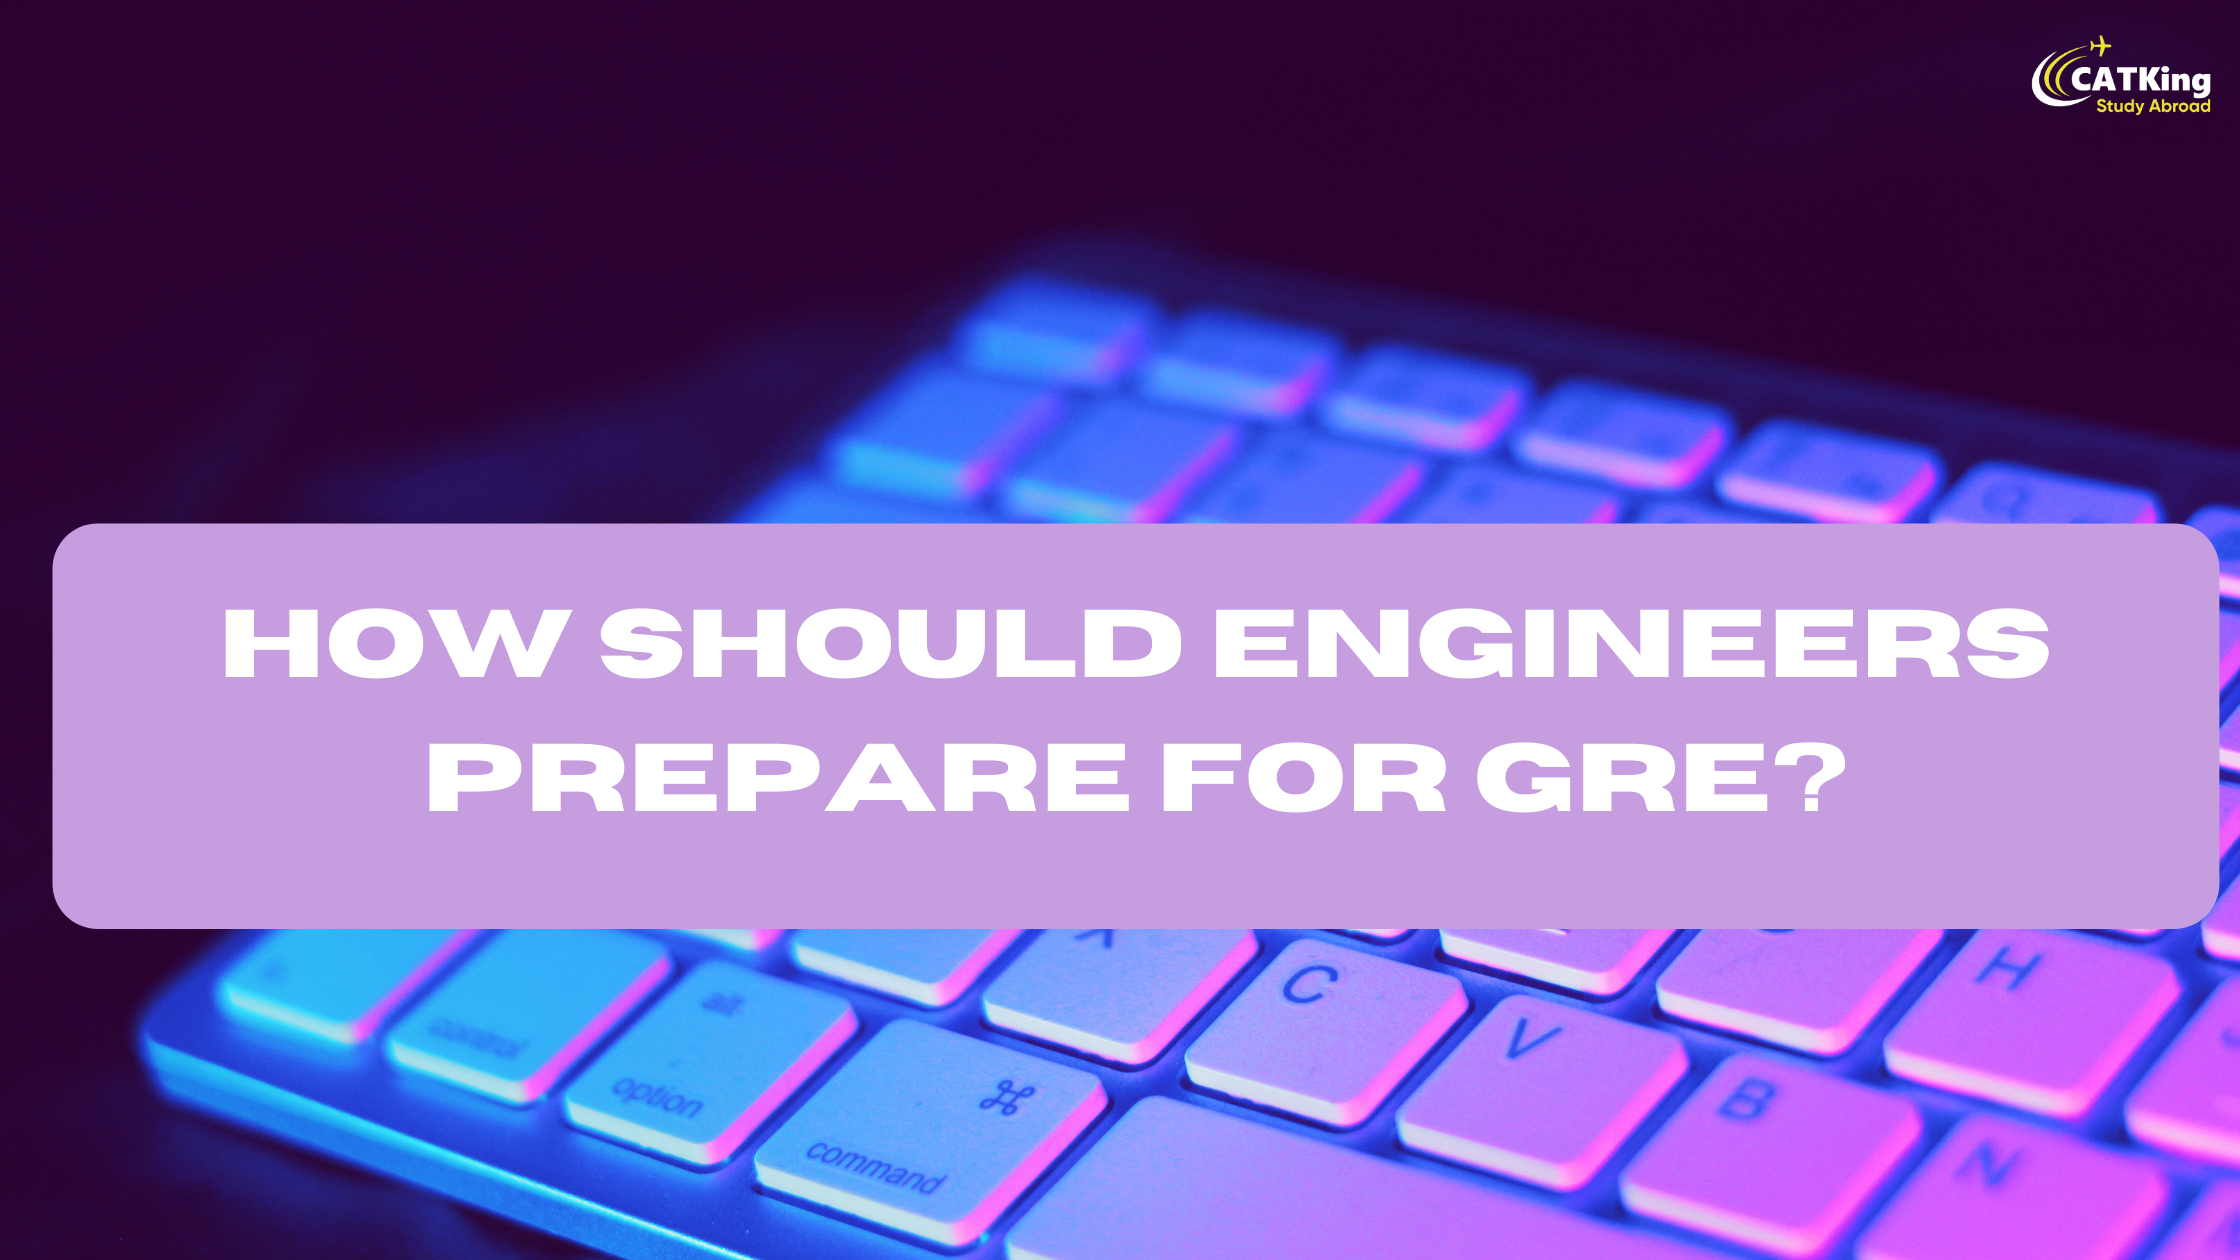 How Should Engineers Prepare For GRE?